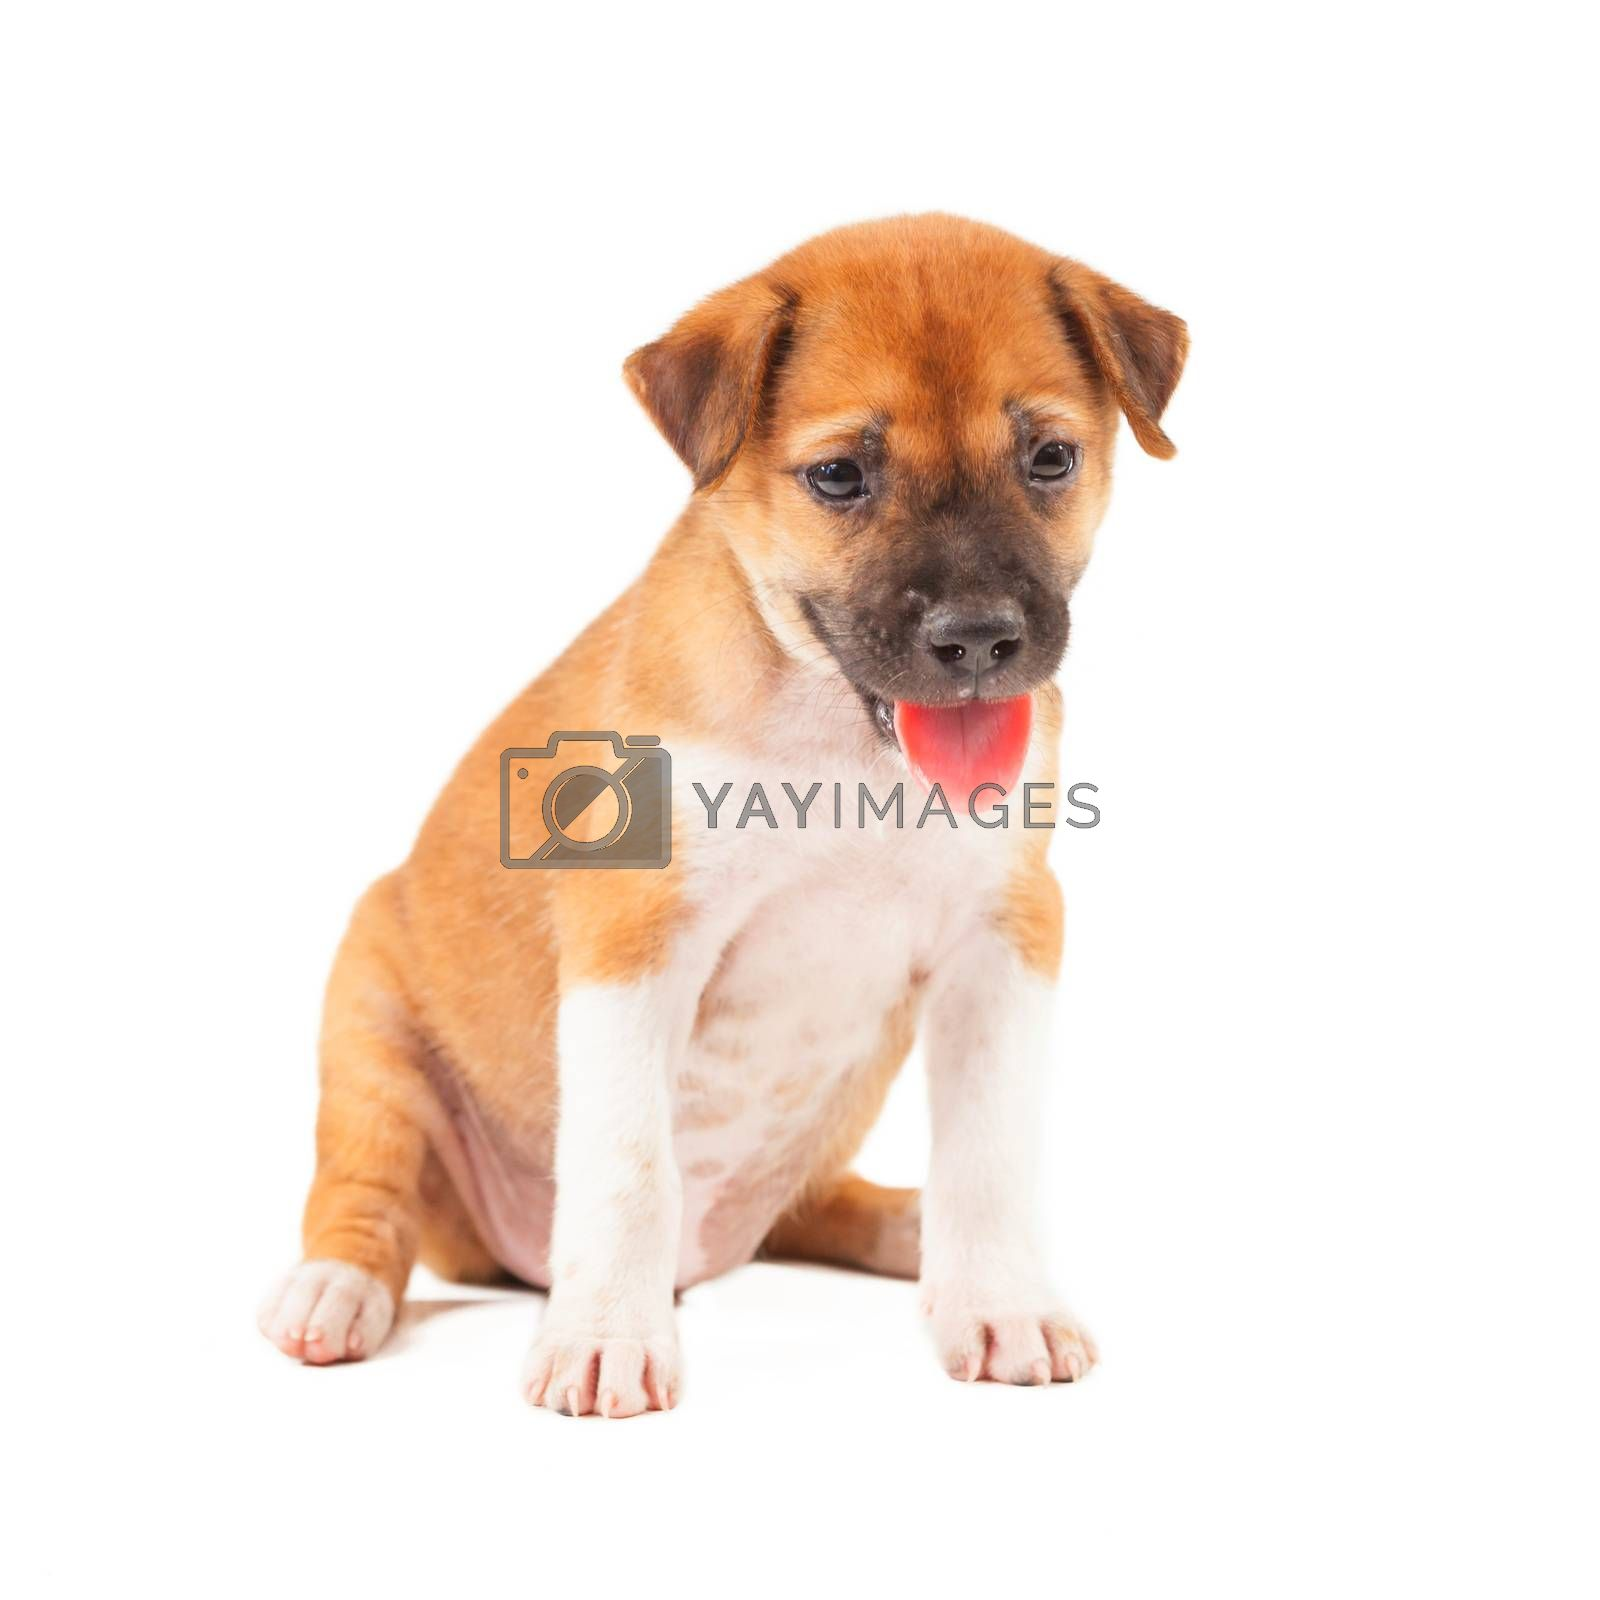 Puppy Dog showing tongue isolated on white background